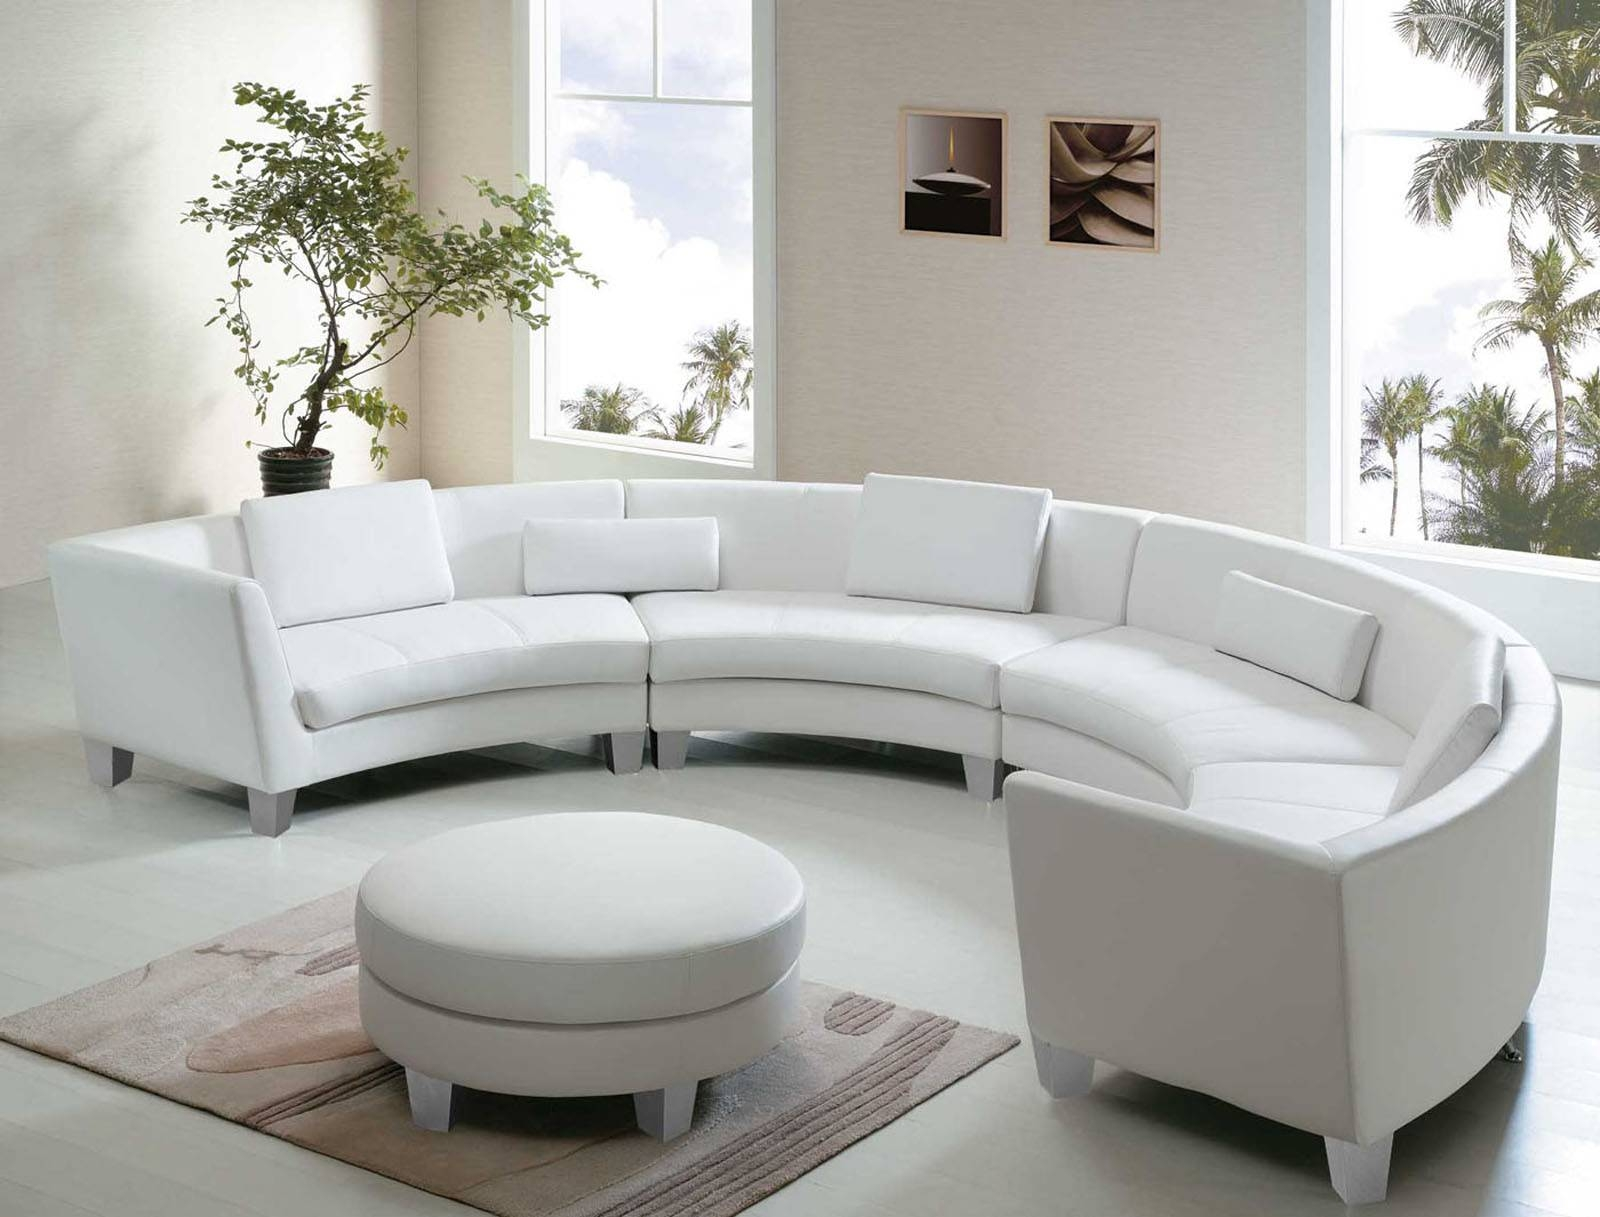 Sofa : Elegant Half Curved Sectional Sofa In Cream Tone Witj Brown in Circle Sectional Sofa (Image 23 of 30)